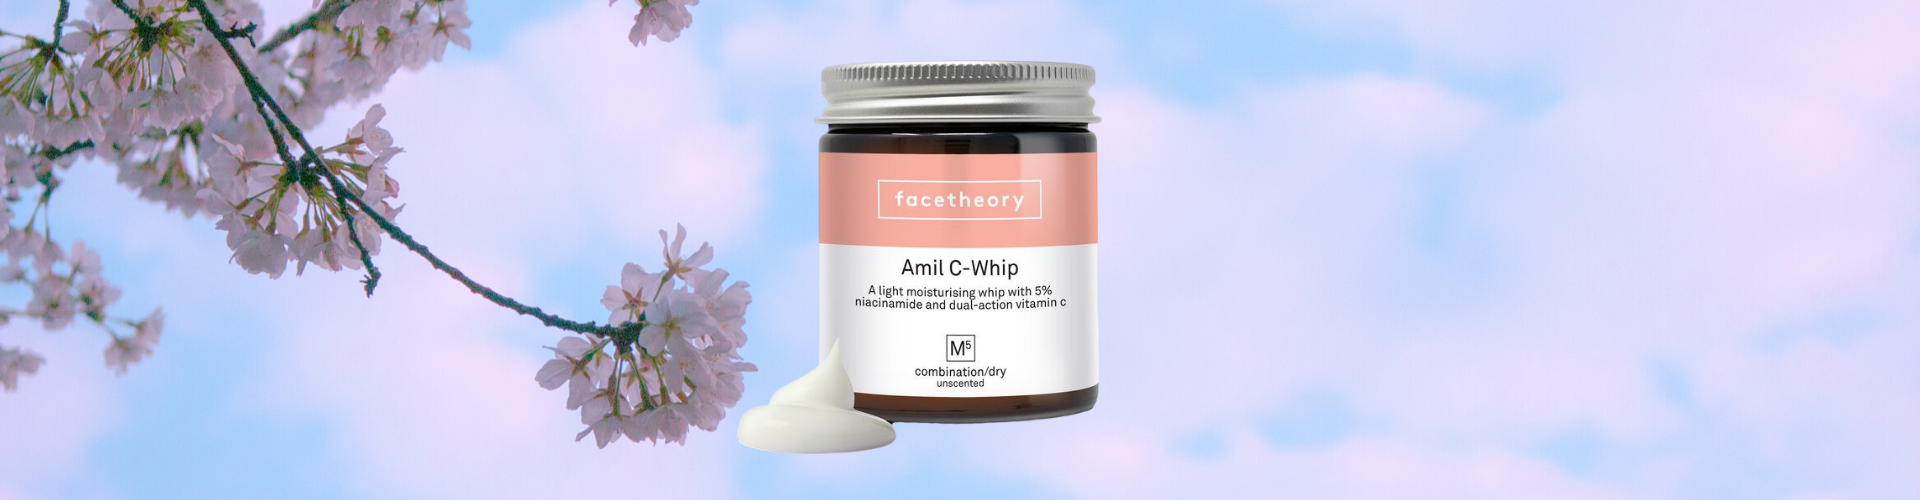 Facetheory amil-c whip review - photo of the moisturiser with a cherry blossom background.